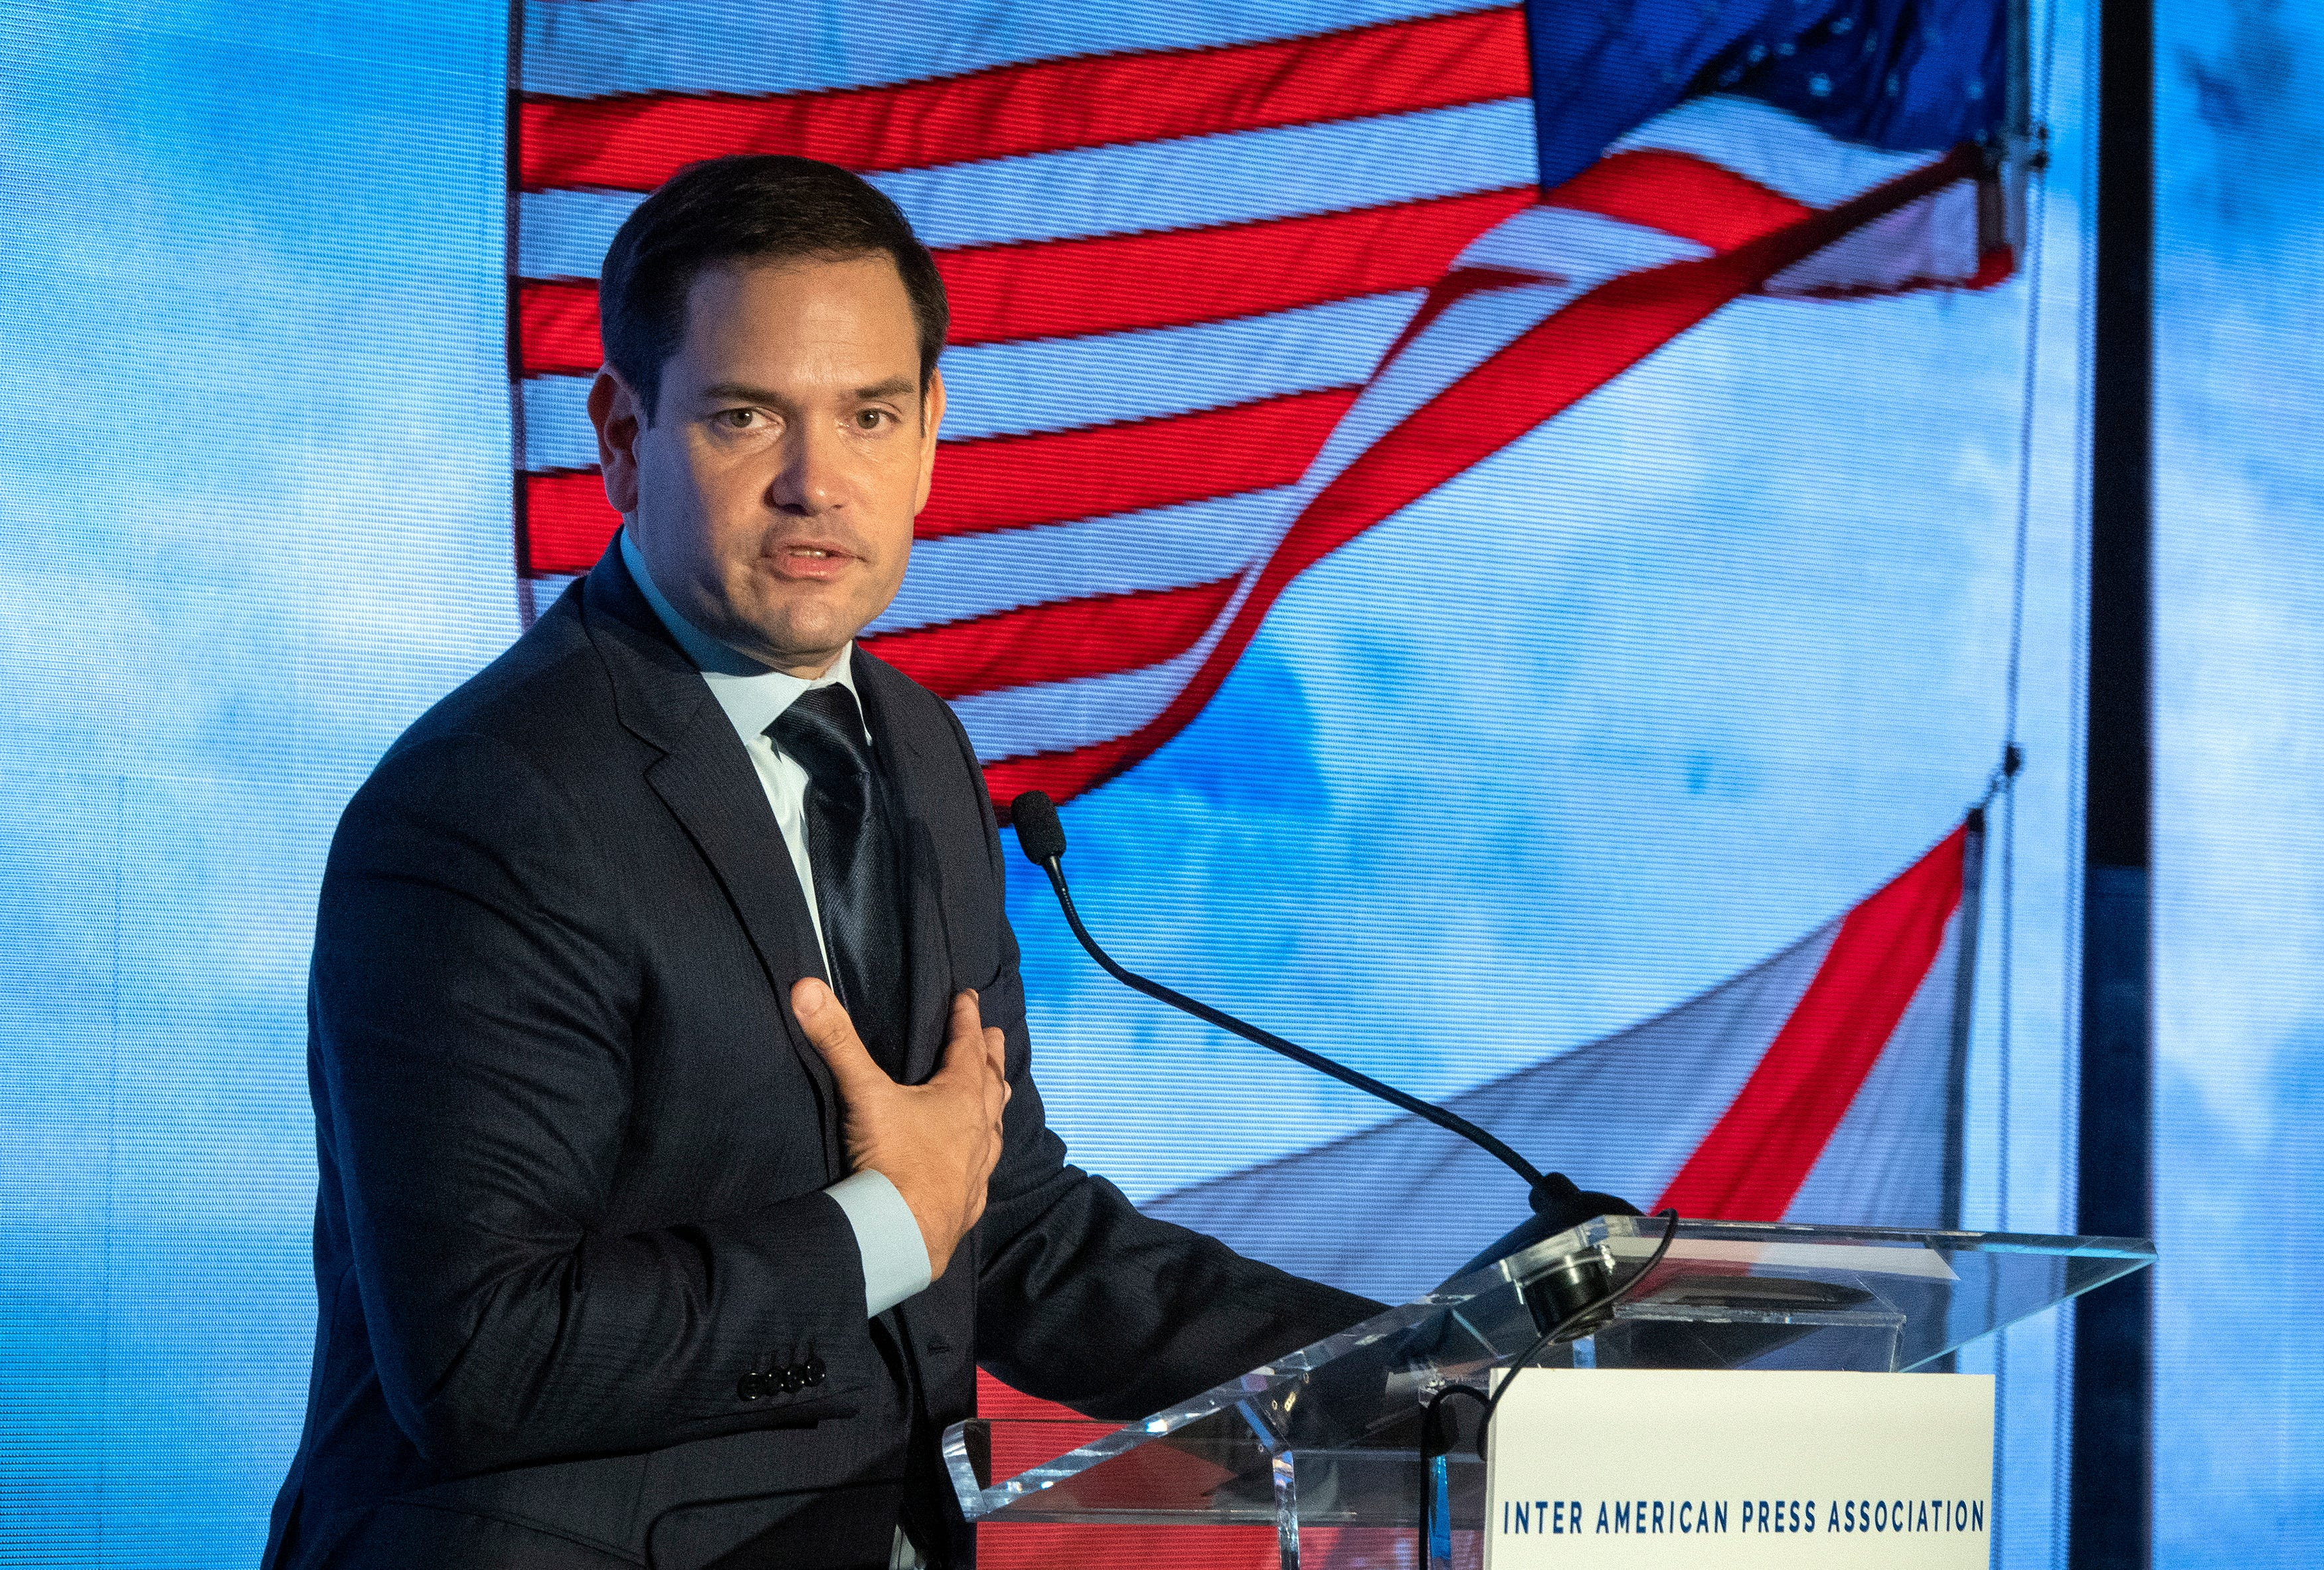 U.S. Sen. Marco Rubio of Florida speaks during the 75th General Assembly of the Inter American Press Association (IAPA), in Coral Gables, Florida, Oct. 6, 2019.